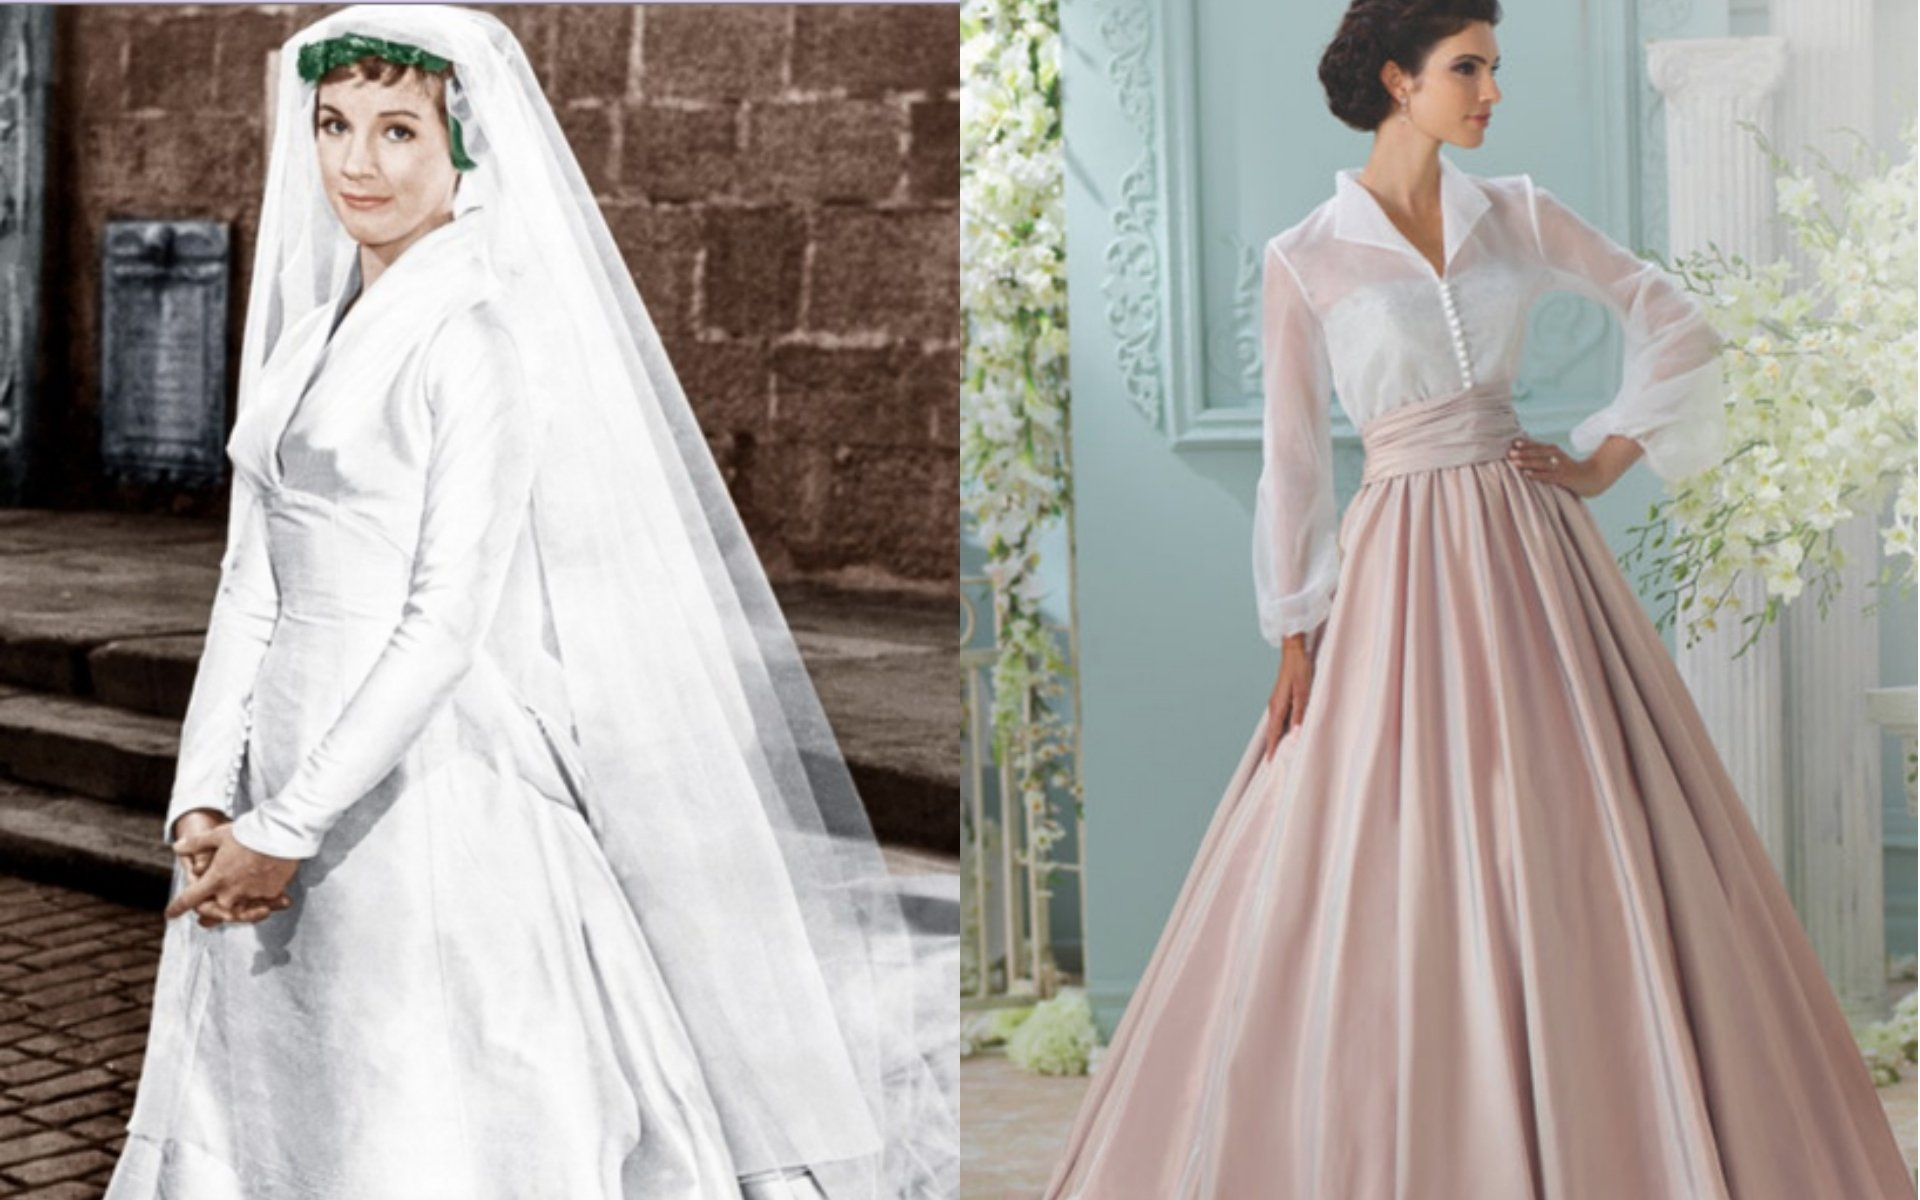 10 Most Recommended Sound Of Music Costume Ideas sound of music wedding dress wedding dress ideas 2021